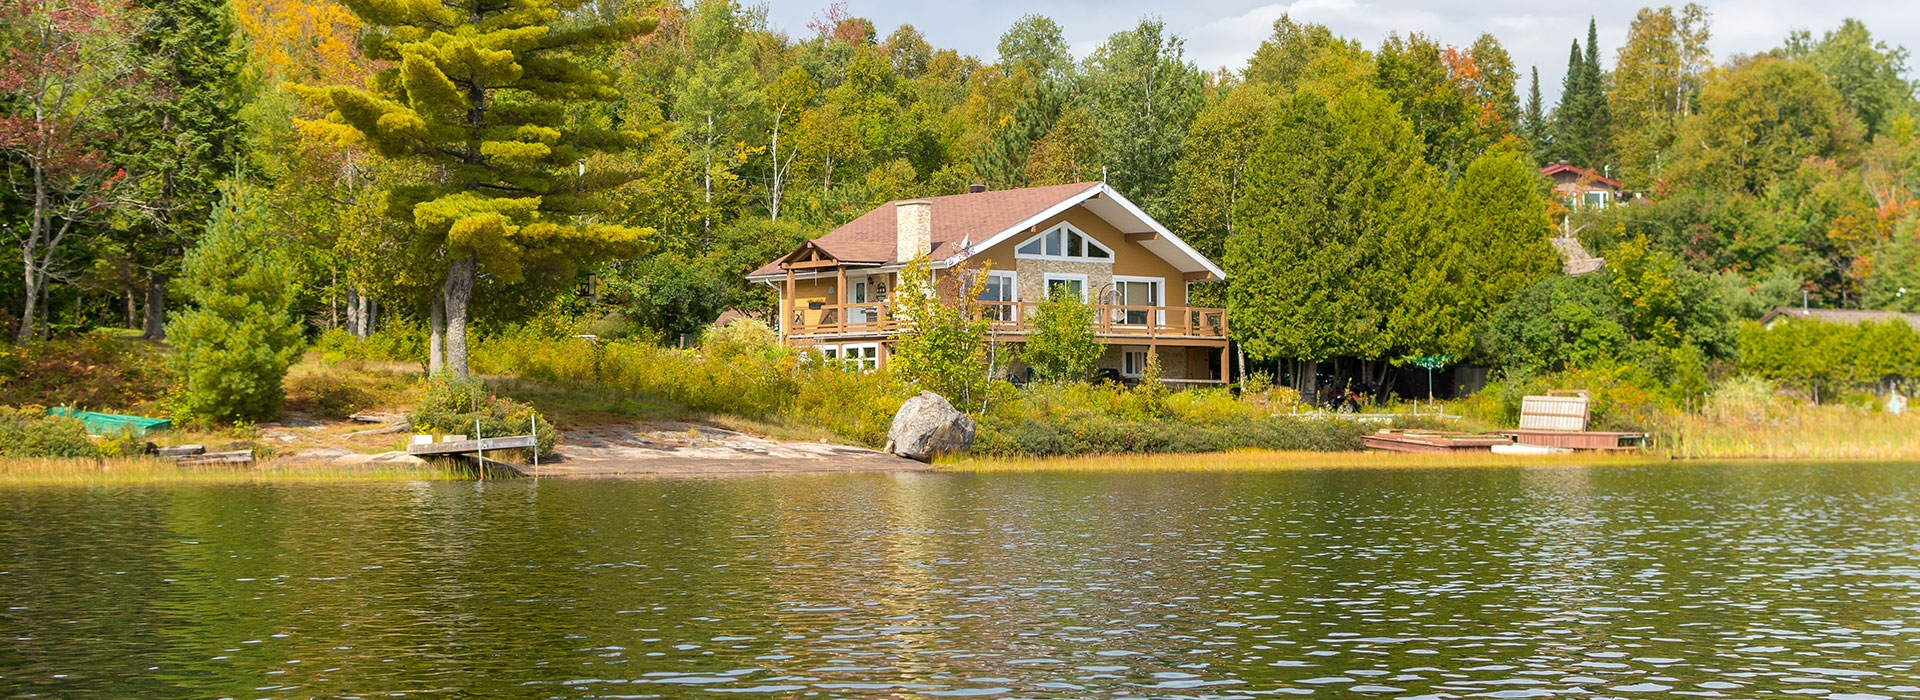 Lakeshore Properties For Sale